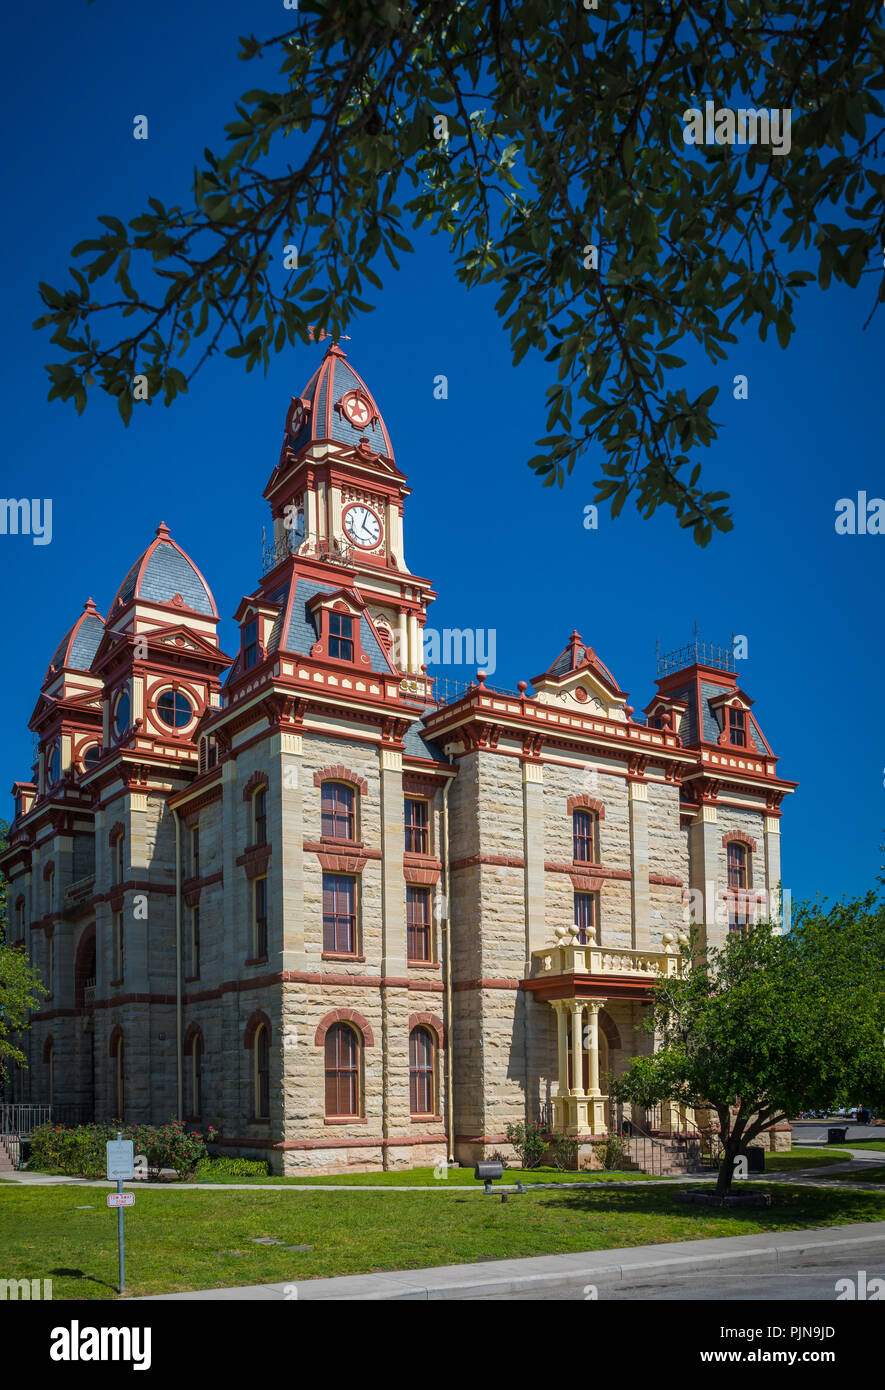 The city of Lockhart is named after Byrd Lockhart, an assistant surveyor of Green DeWitt and reportedly the first Anglo to set foot in Caldwell County. - Stock Image